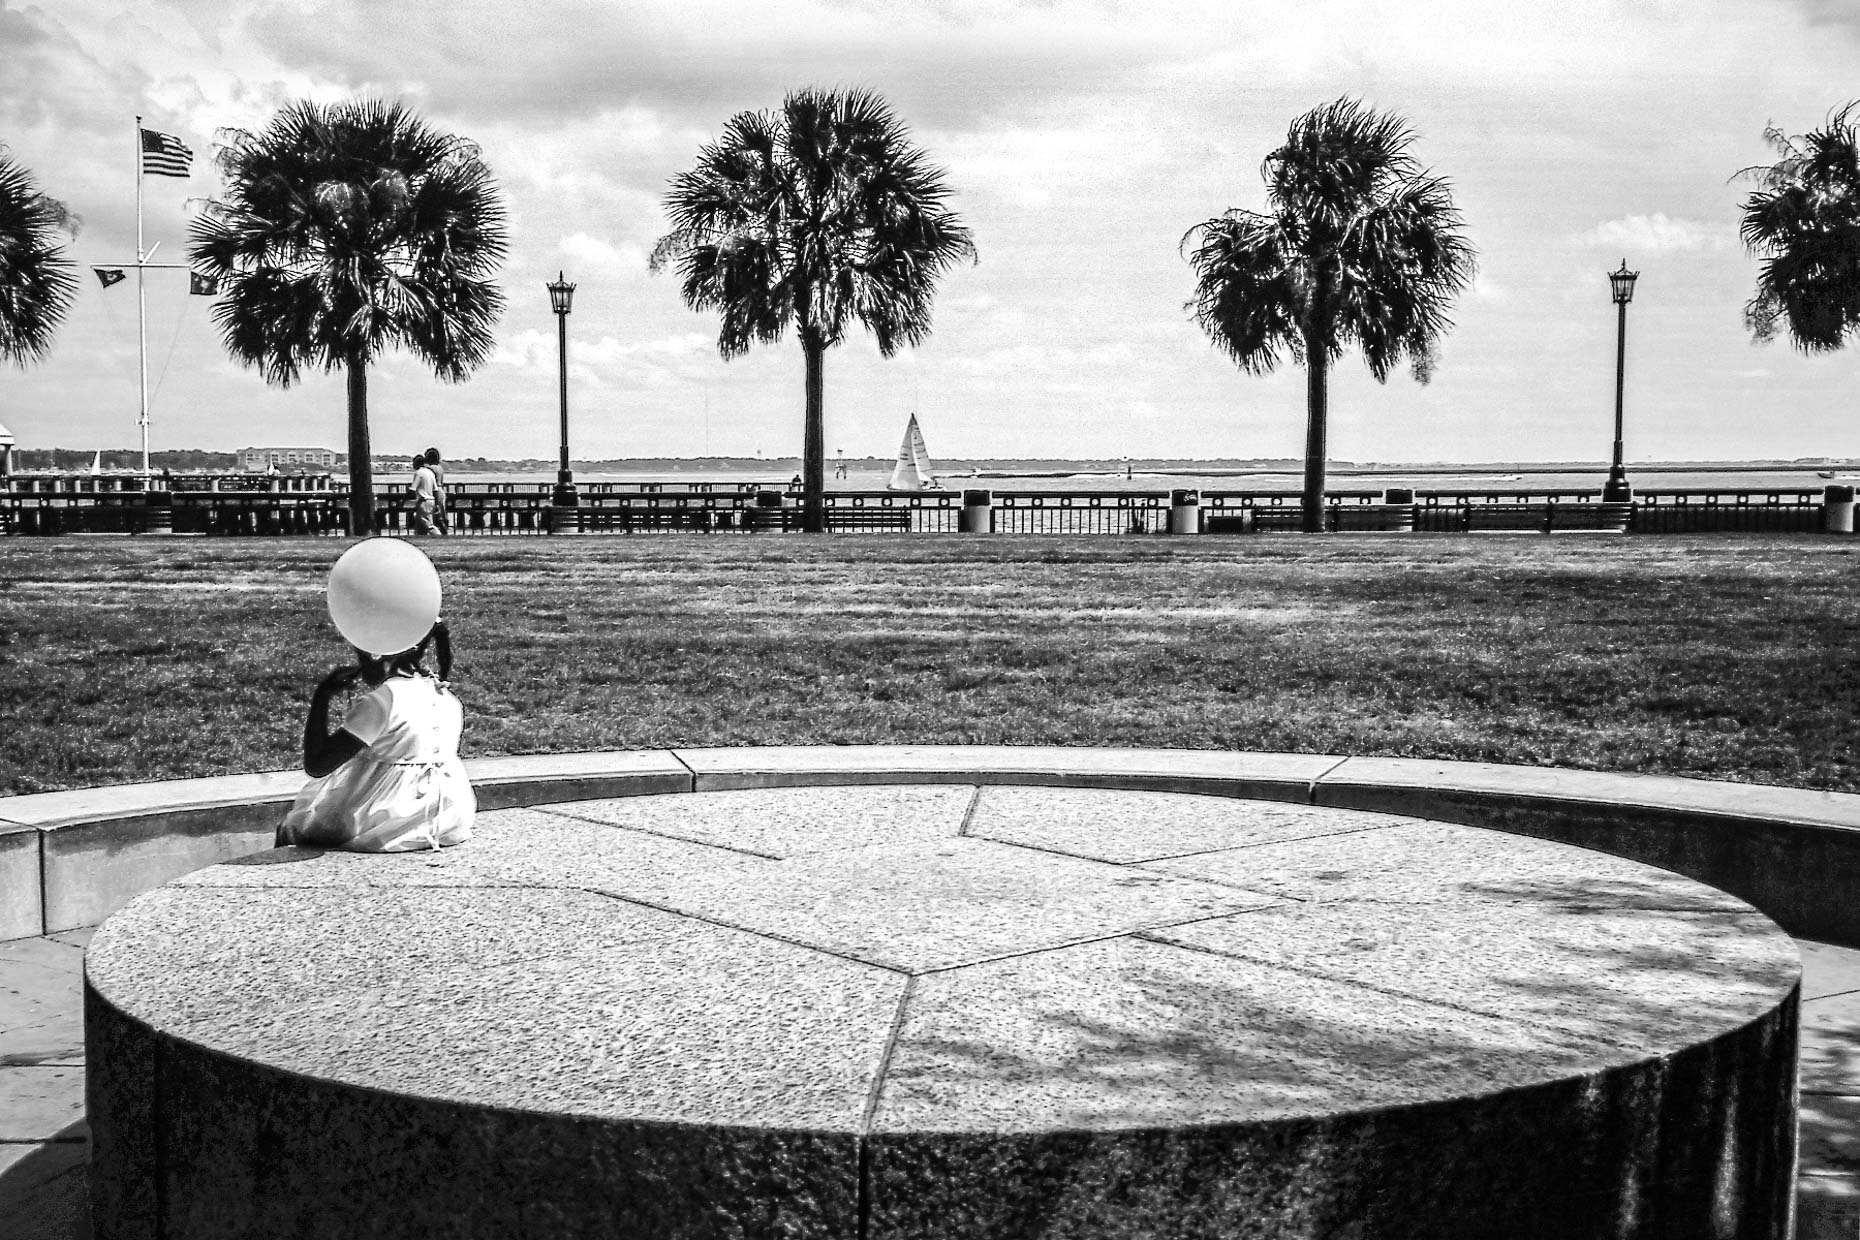 Black and white photograph of young girl with balloon sitting on round concrete bench with palm trees and ocean in background